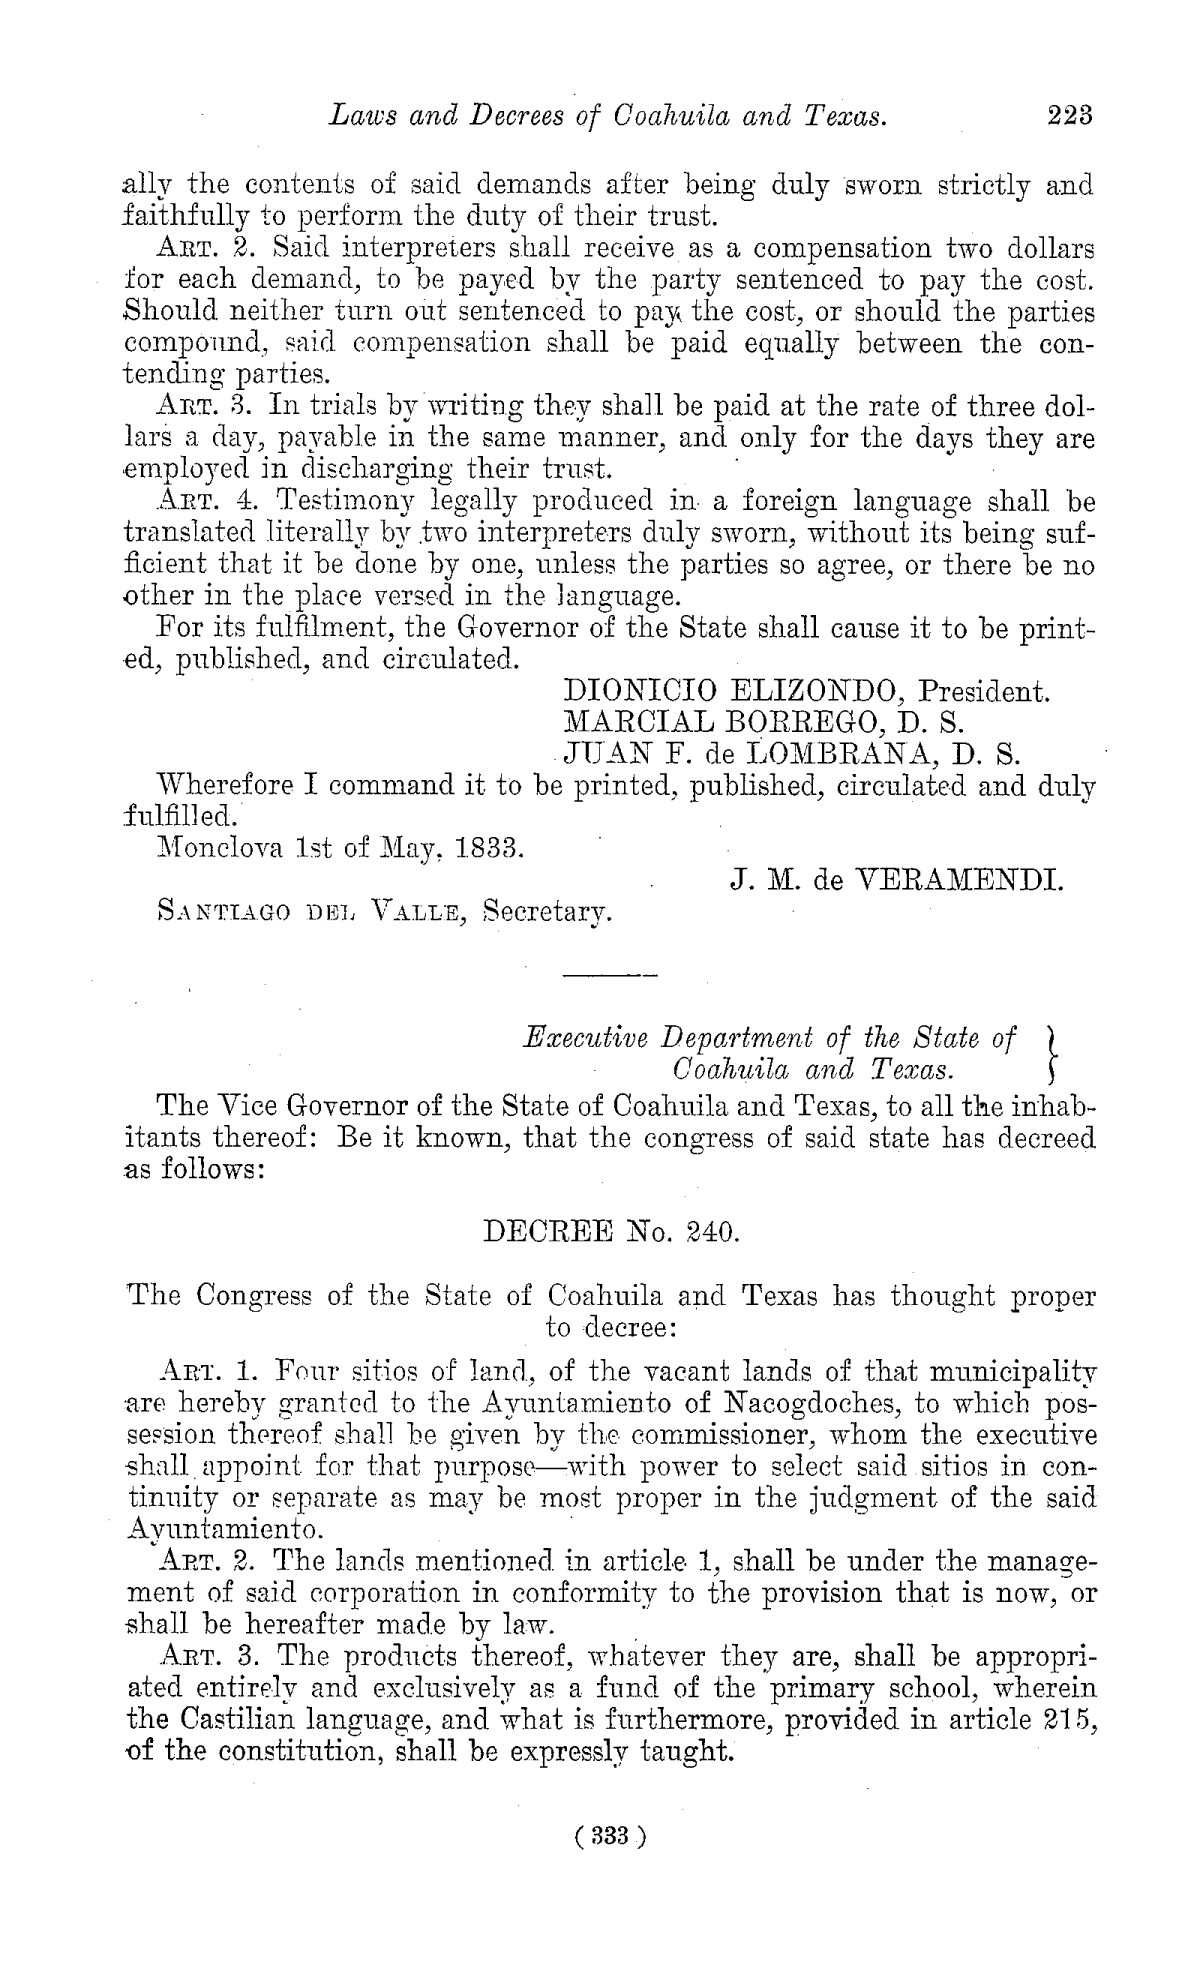 The Laws of Texas, 1822-1897 Volume 1                                                                                                      333